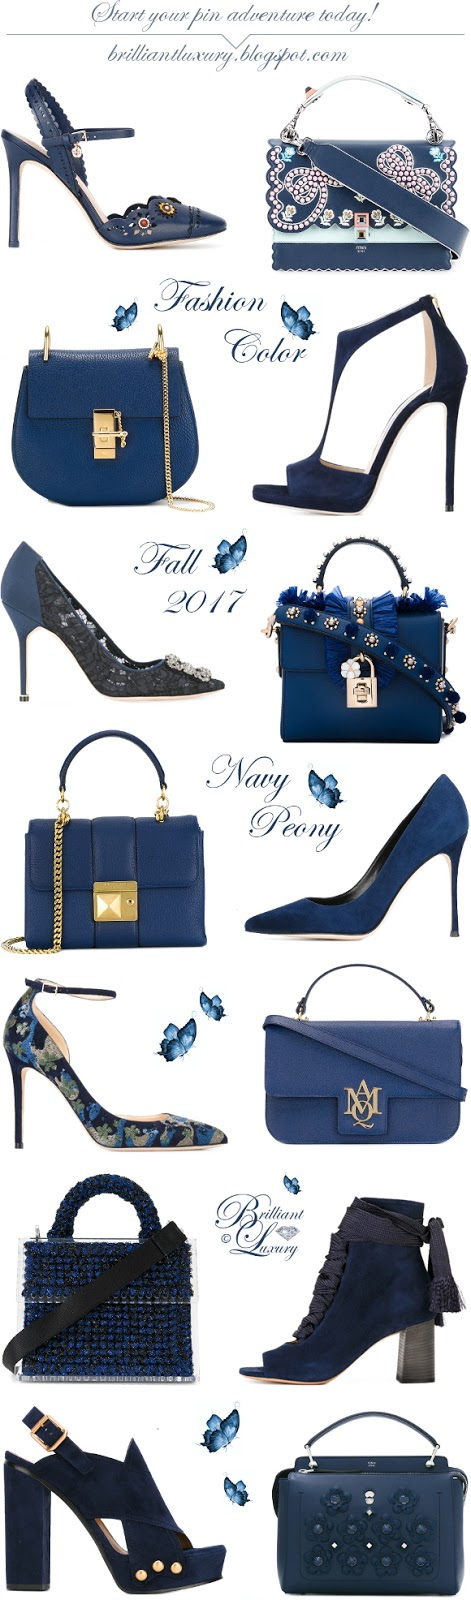 Brilliant Luxury ♦ Fashion Color Fall 2017 ~ navy peony